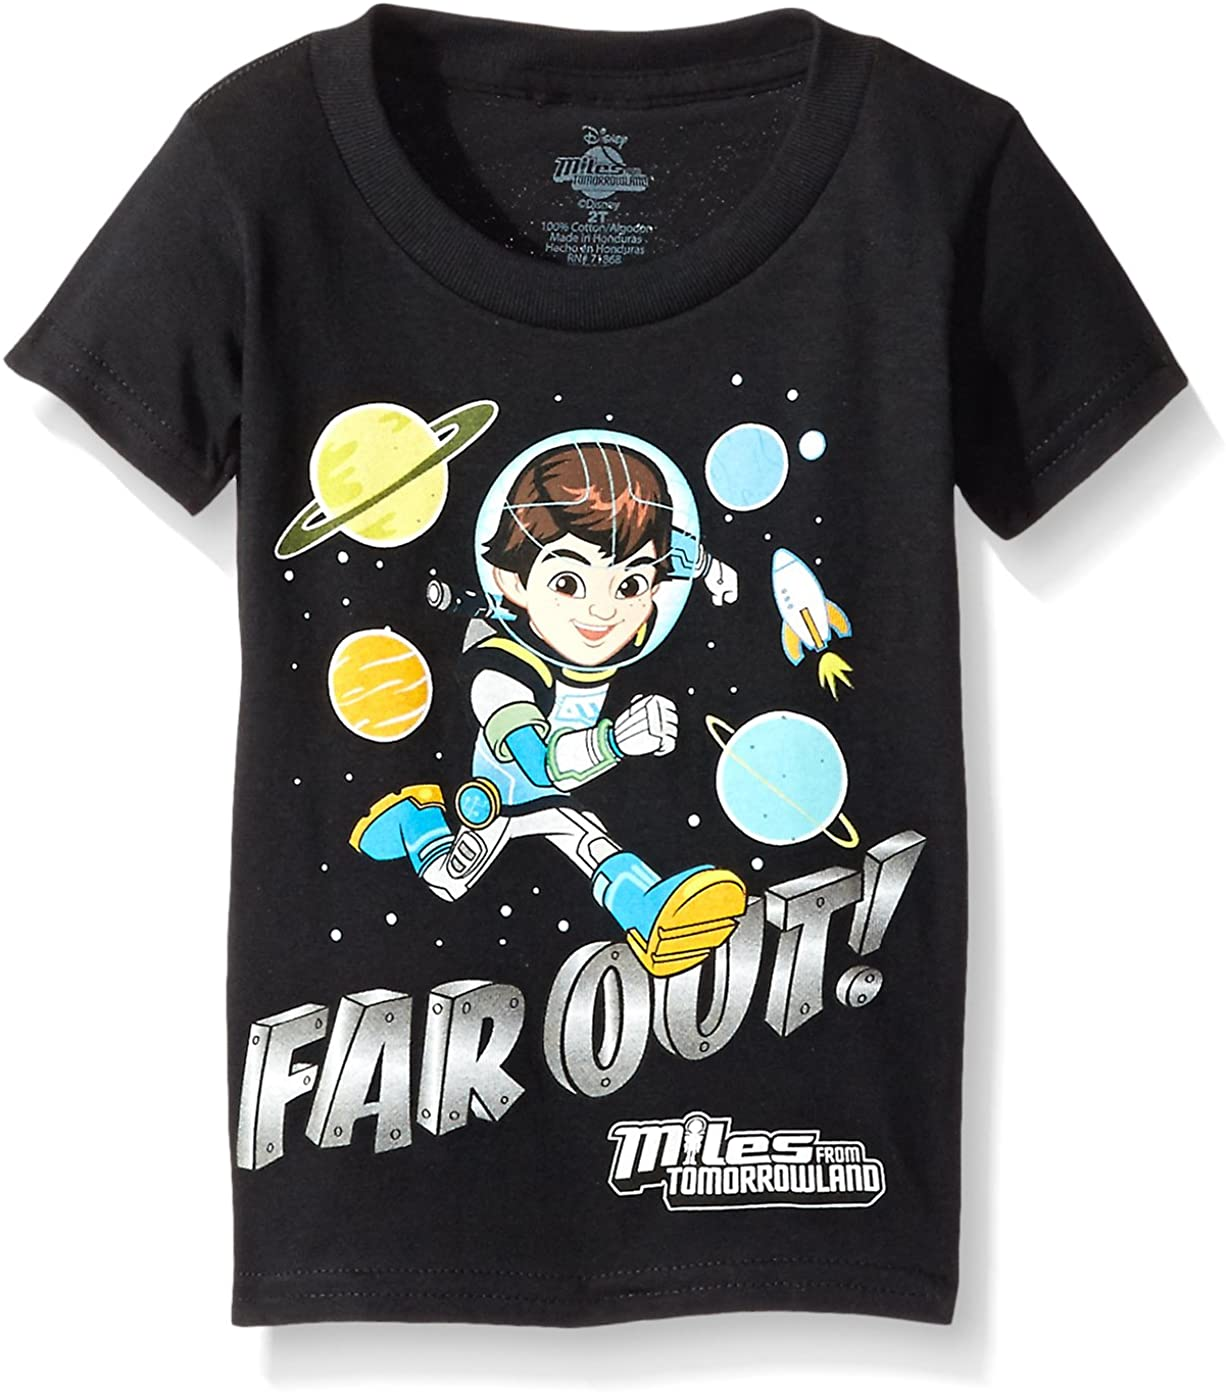 Disney Store Miles from Tomorrowland Little Boy Short Sleeve T Shirt Size 5//6